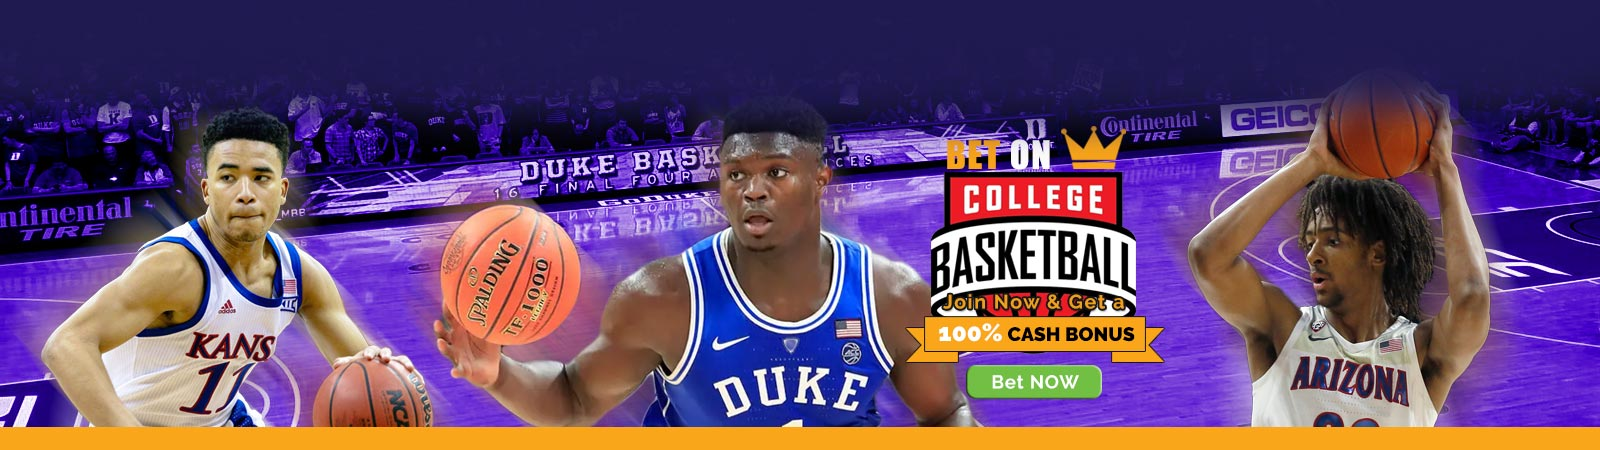 banner-NCAA-basketball-cashbet